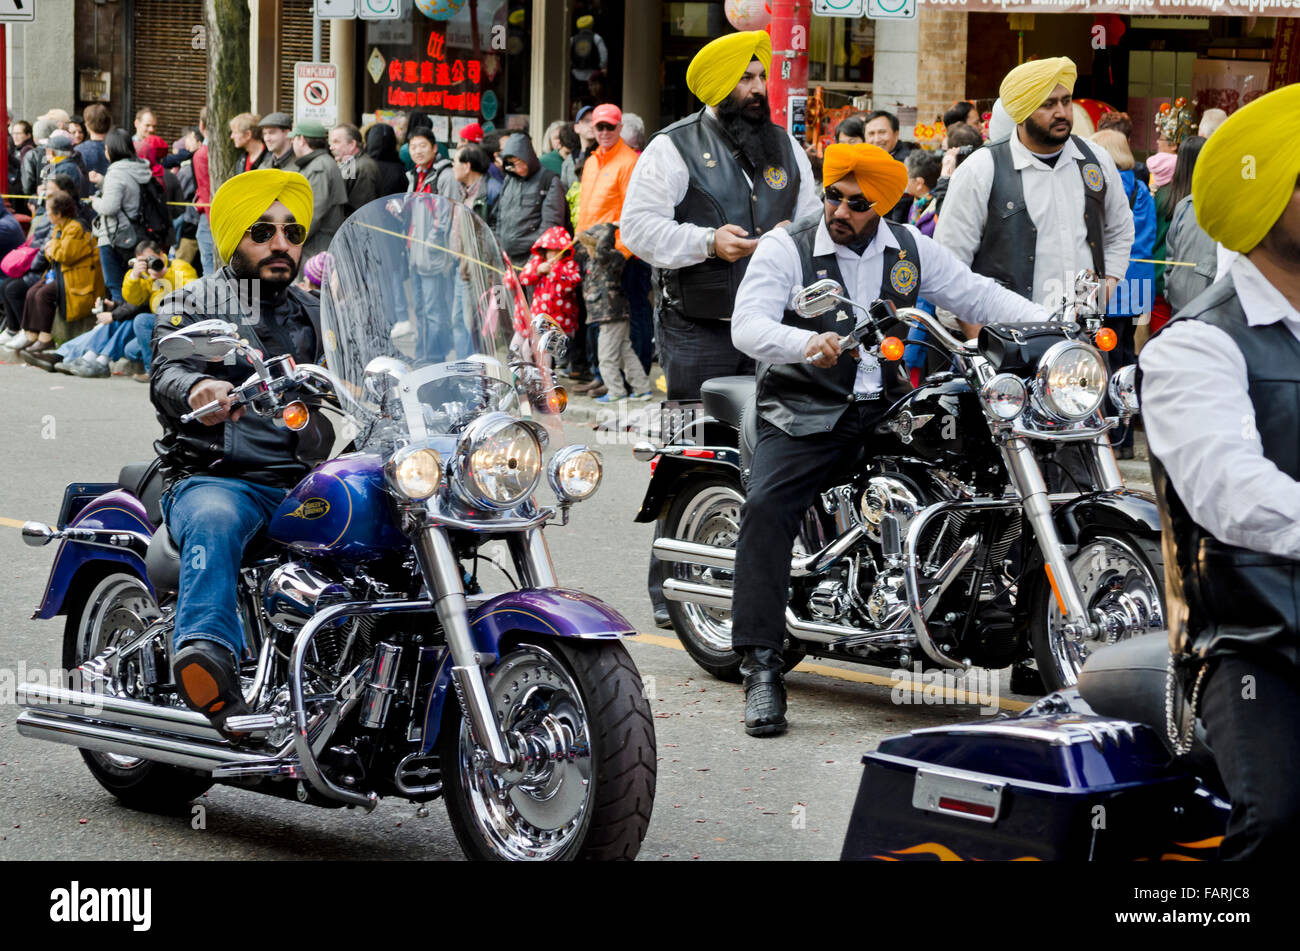 Members Of The Sikh Motorcycle Club Appearing In The